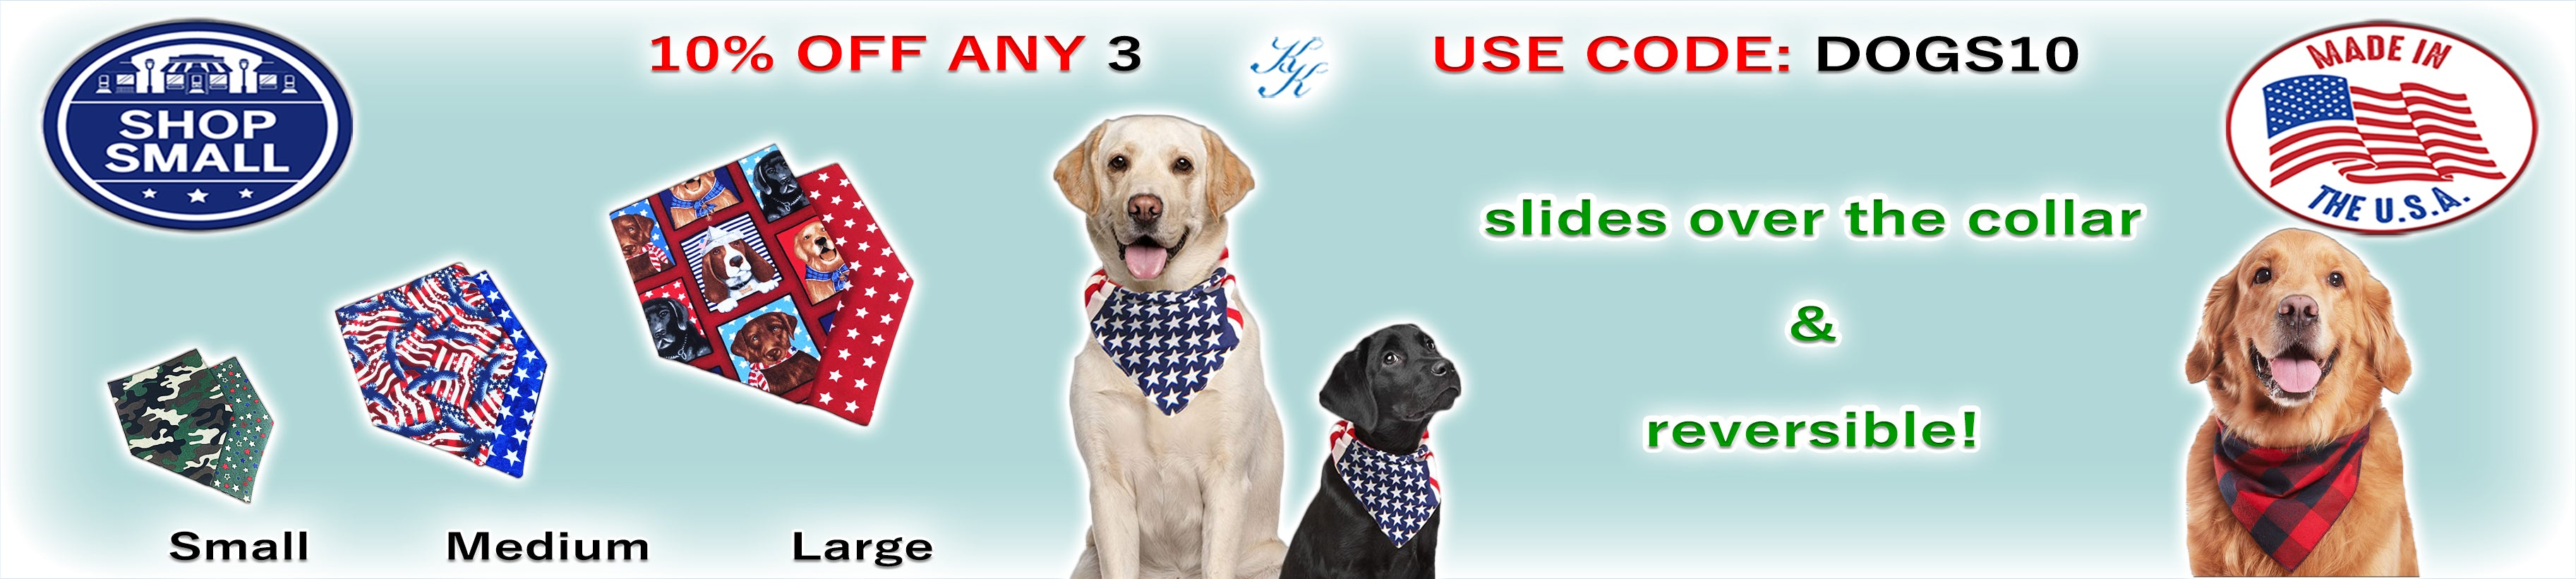 Pet Bandanas by Karen's Kases, by 3 get 10% off, use code dogs10